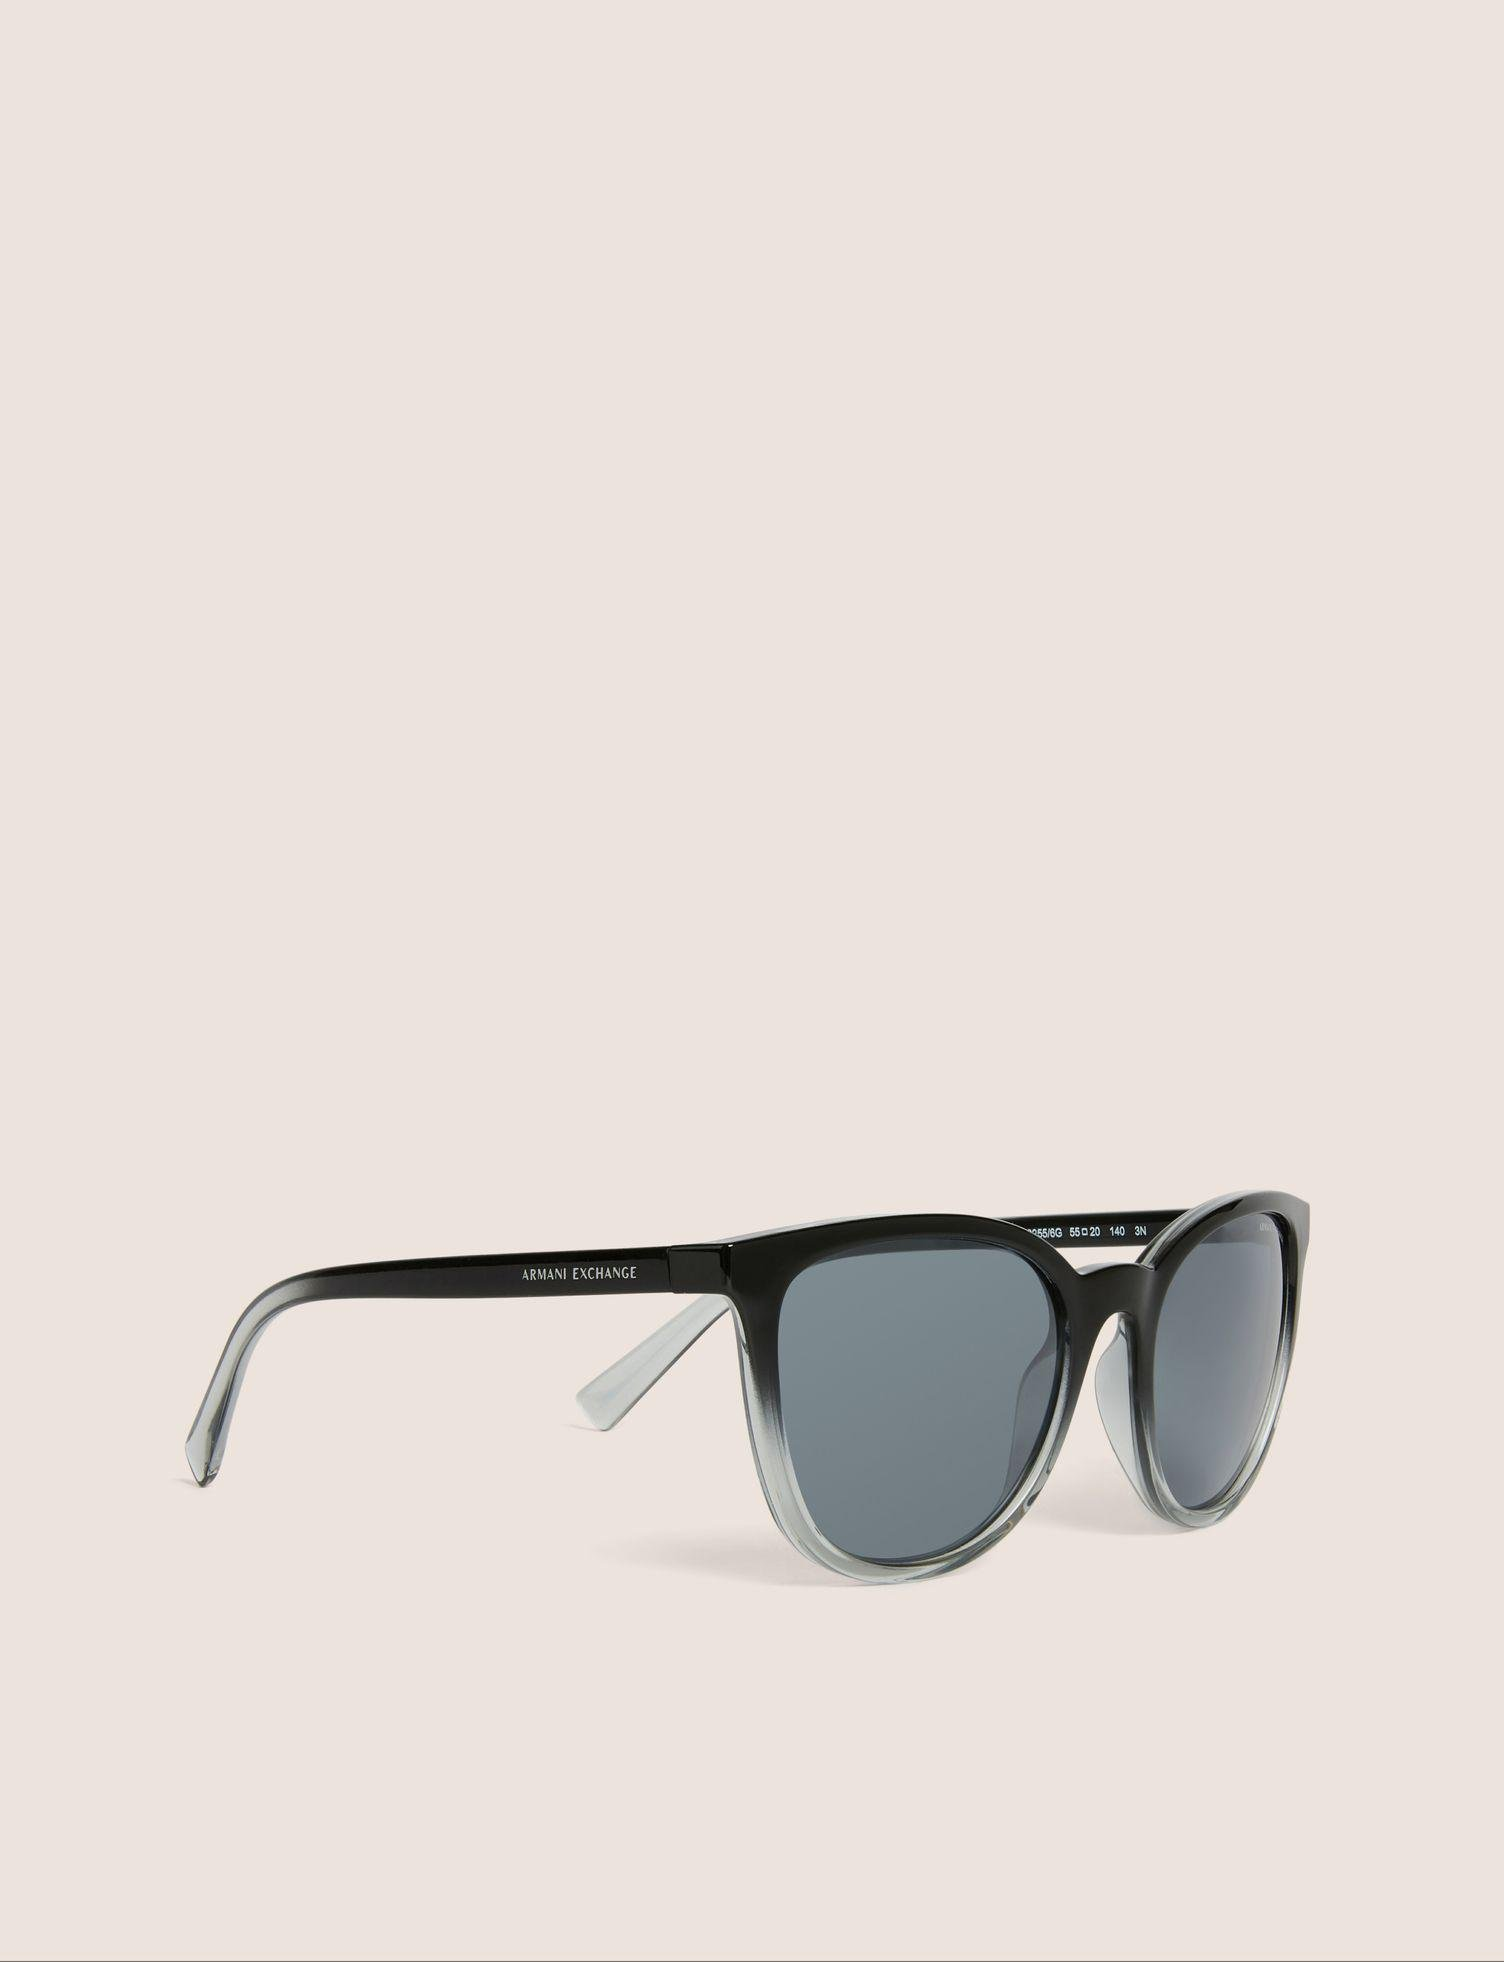 e912f8ce1e8 Armani Exchange - Black Grey Ombre Rounded Sunglasses - Lyst. View  fullscreen